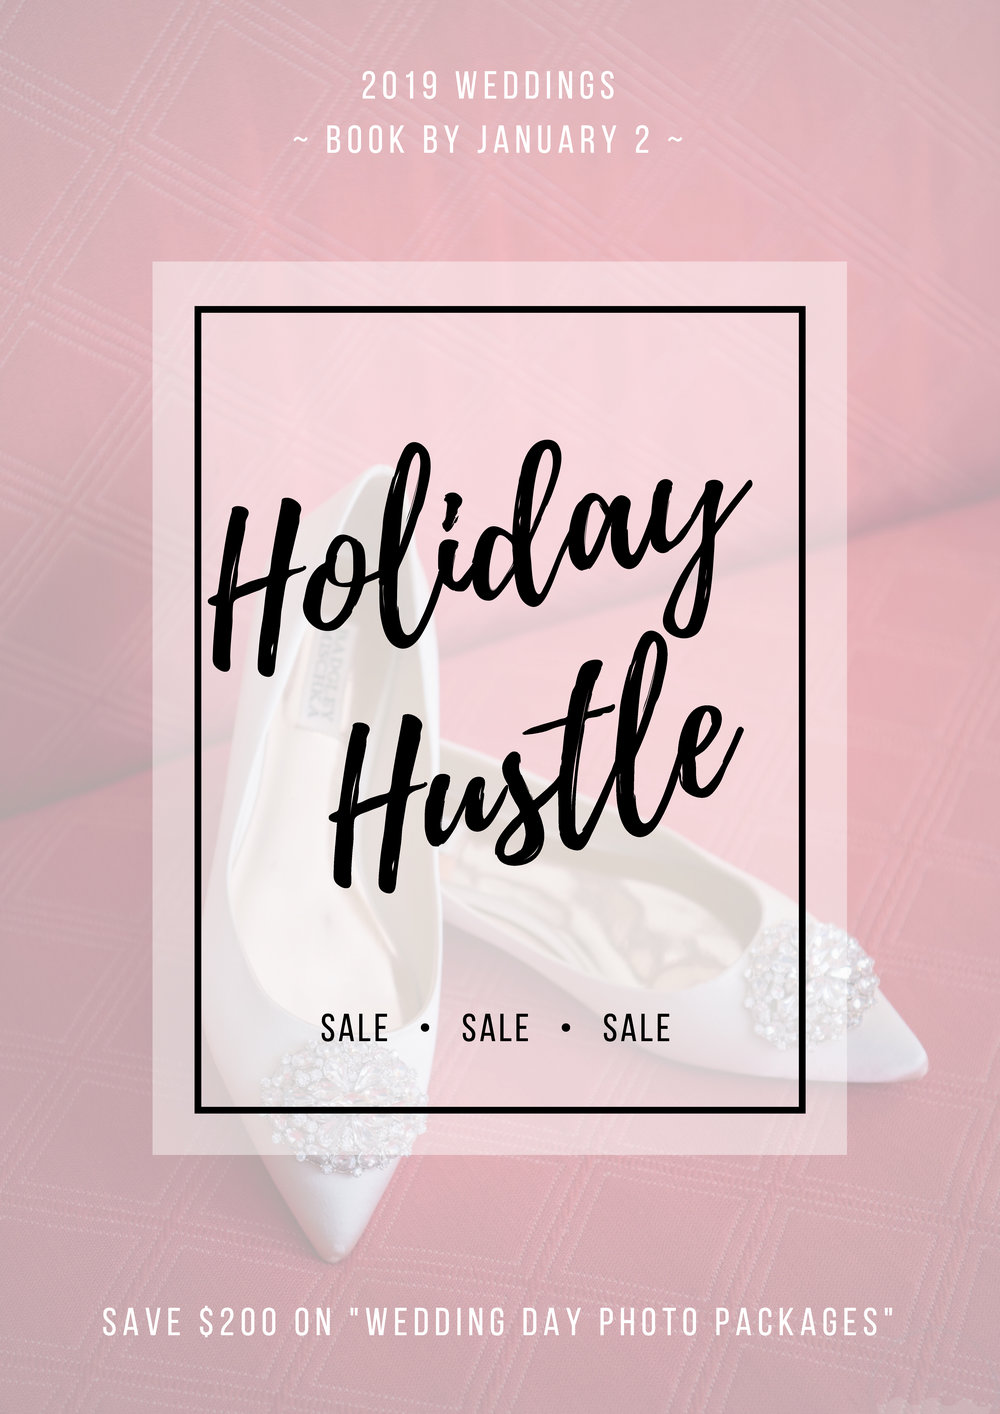 Holiday Hustle Sale 2019.jpg